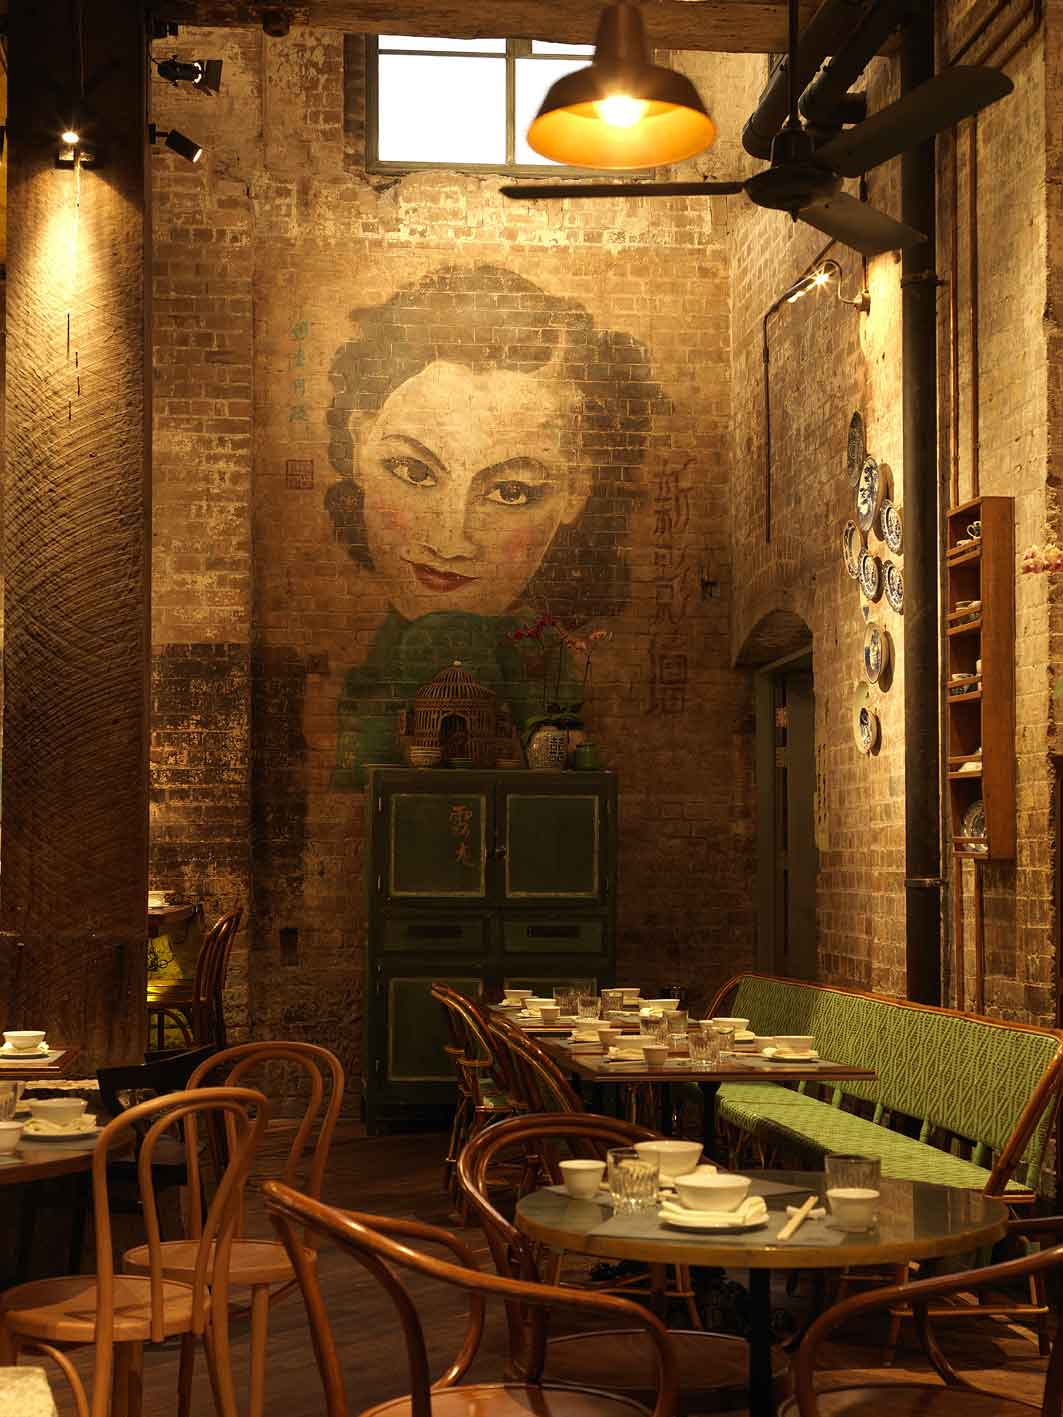 The interior of Mr. Wong's dining room.